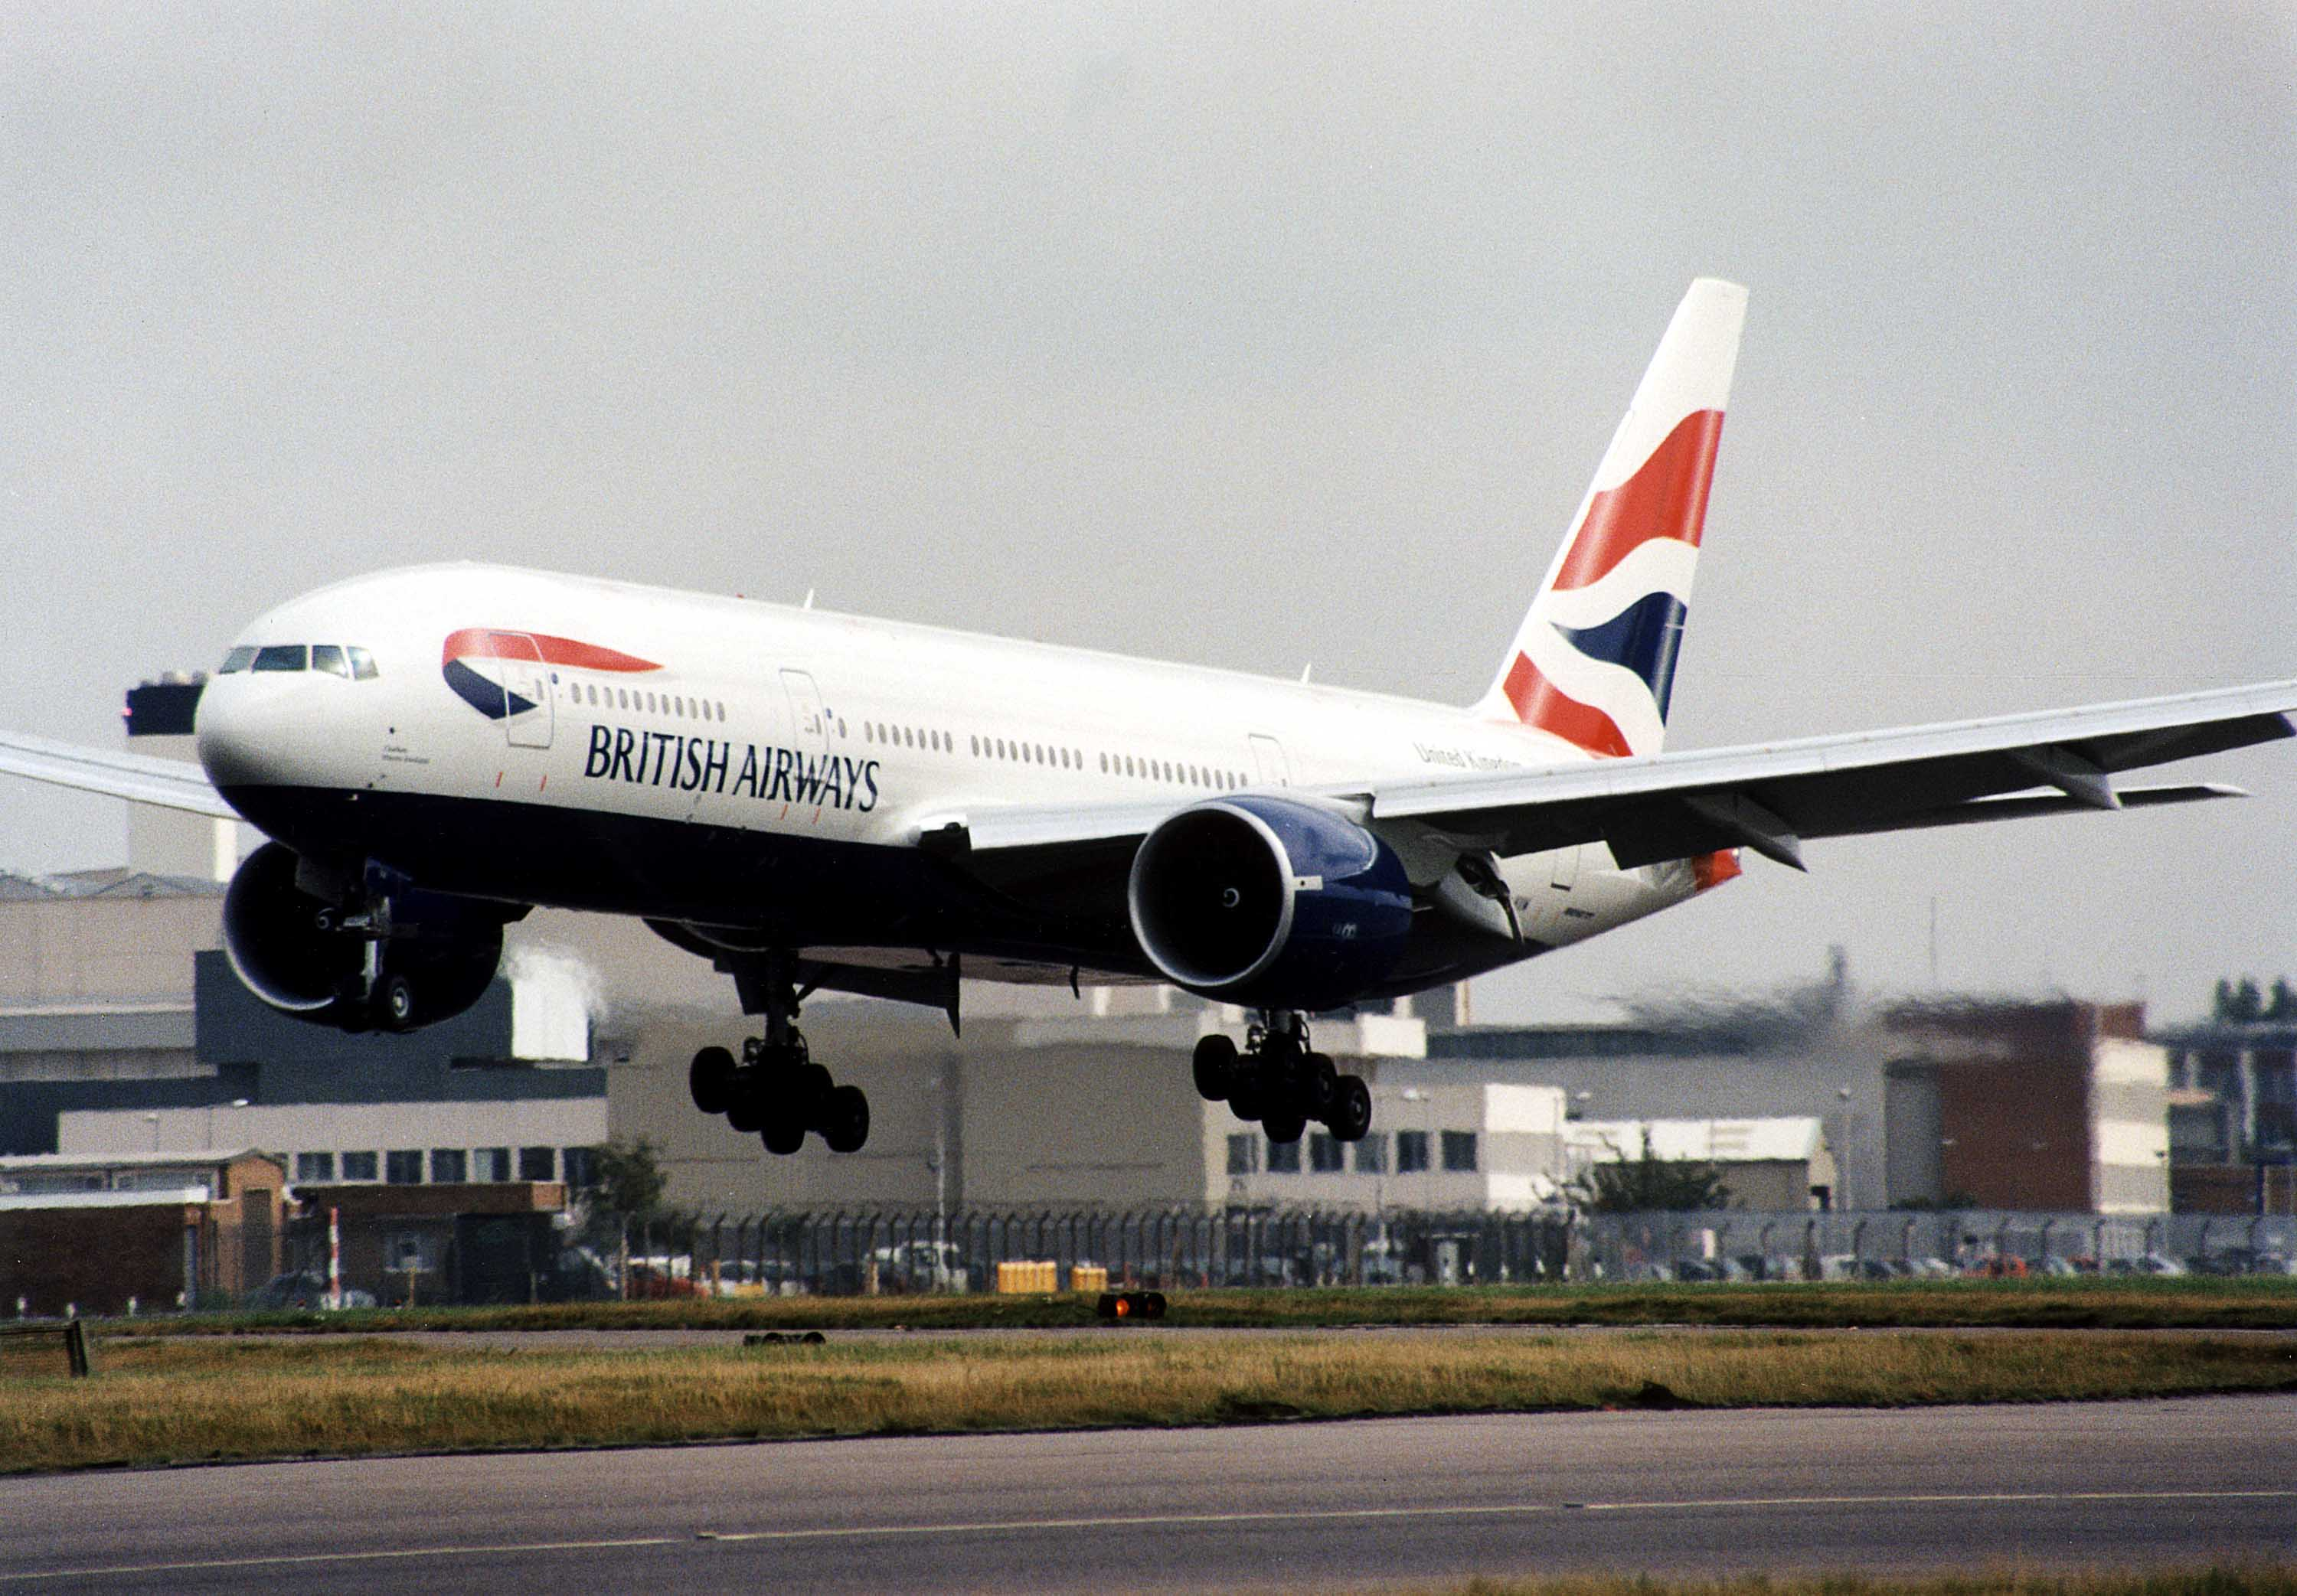 British Airways to launch direct flight from Oman to London